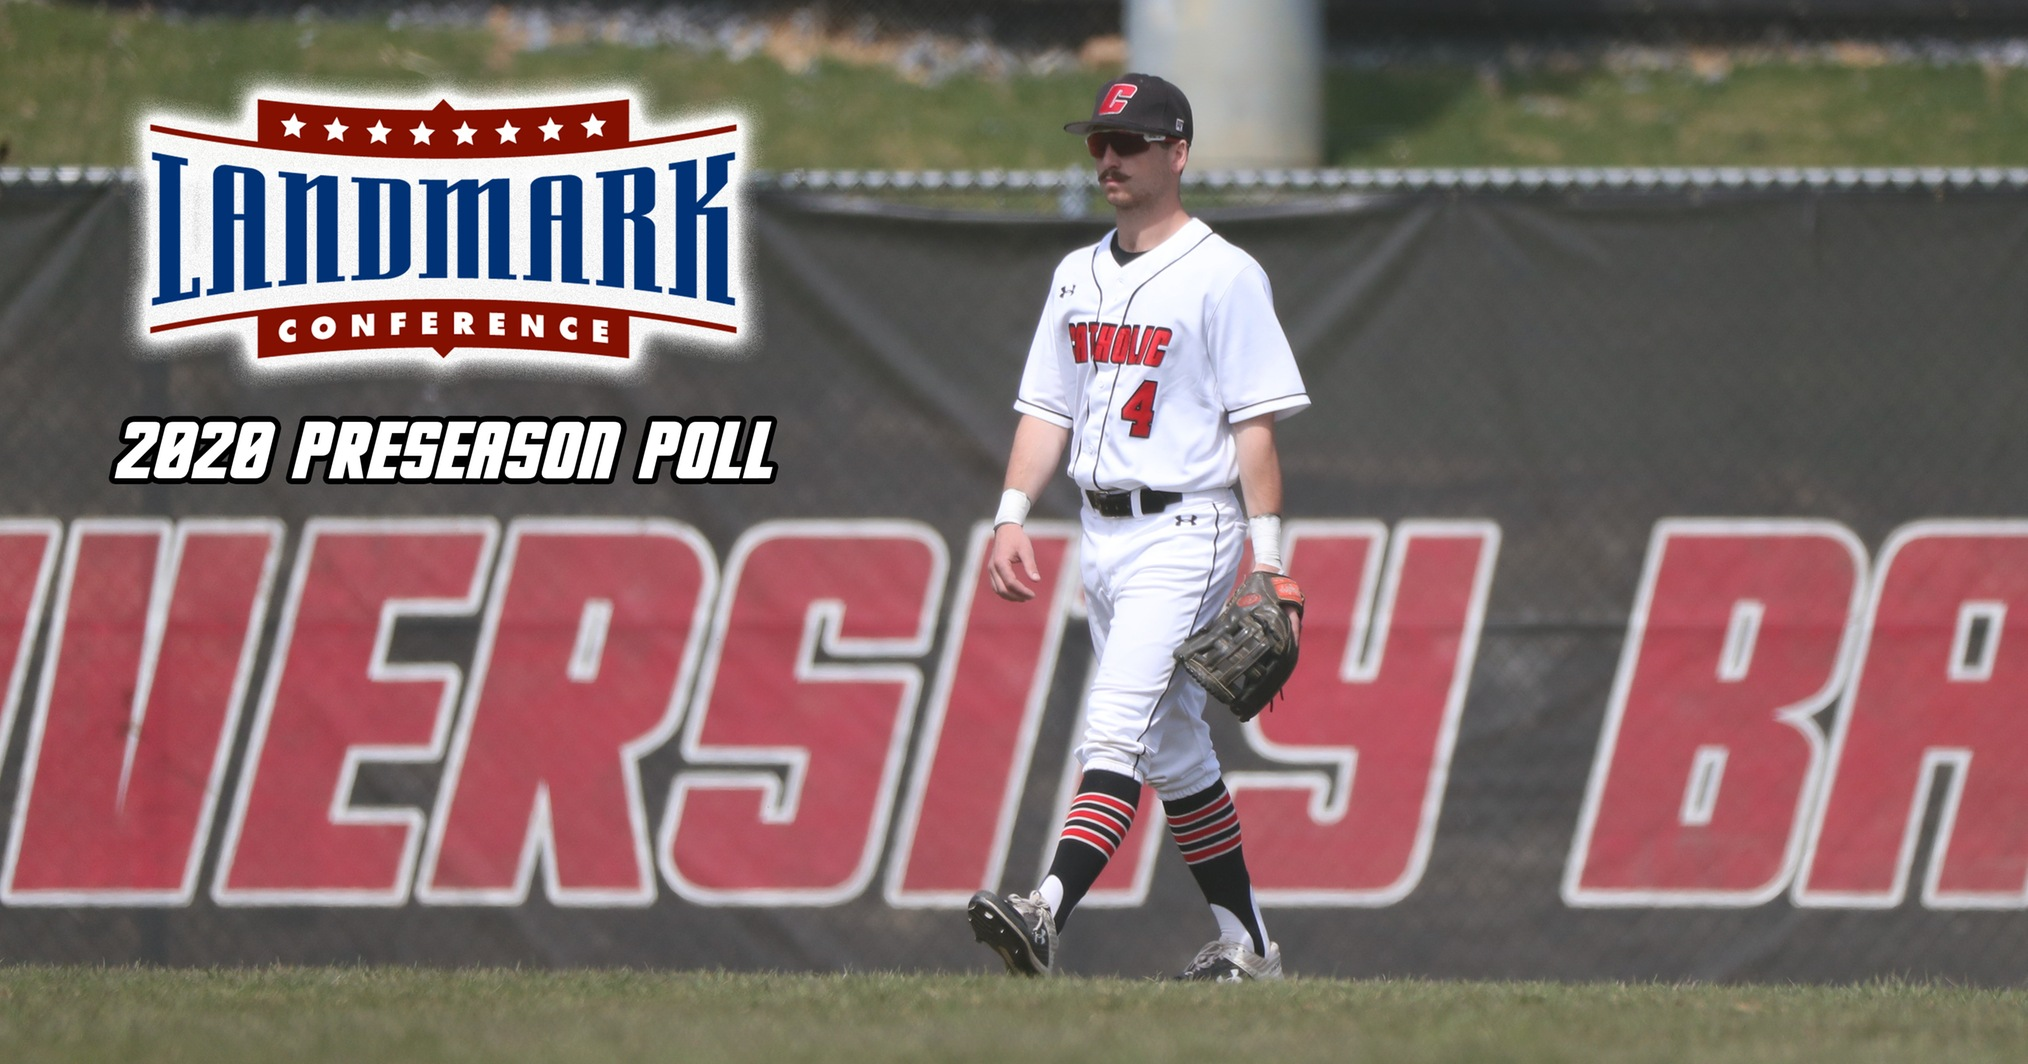 Cardinals Picked Fourth in Landmark Preseason Poll